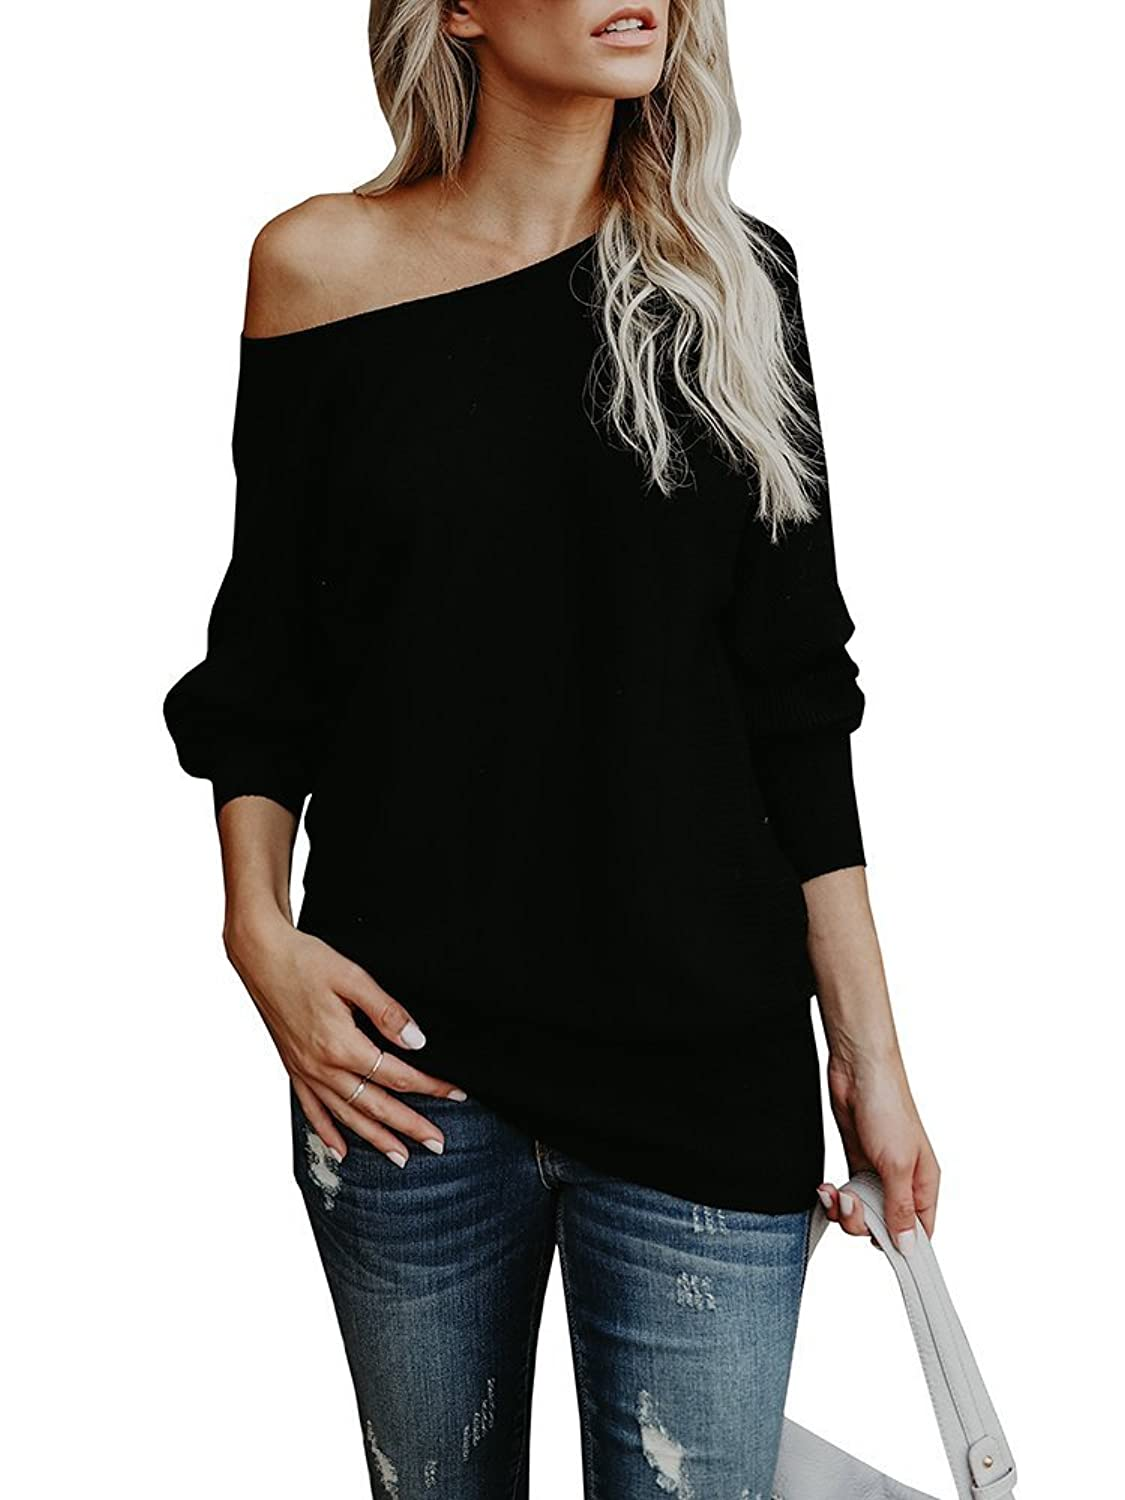 Women s Off Shoulder Knit Jumper long Sleeve Pullover Baggy Solid Sweater. Off  shoulder pullover tops 3eb4549b4